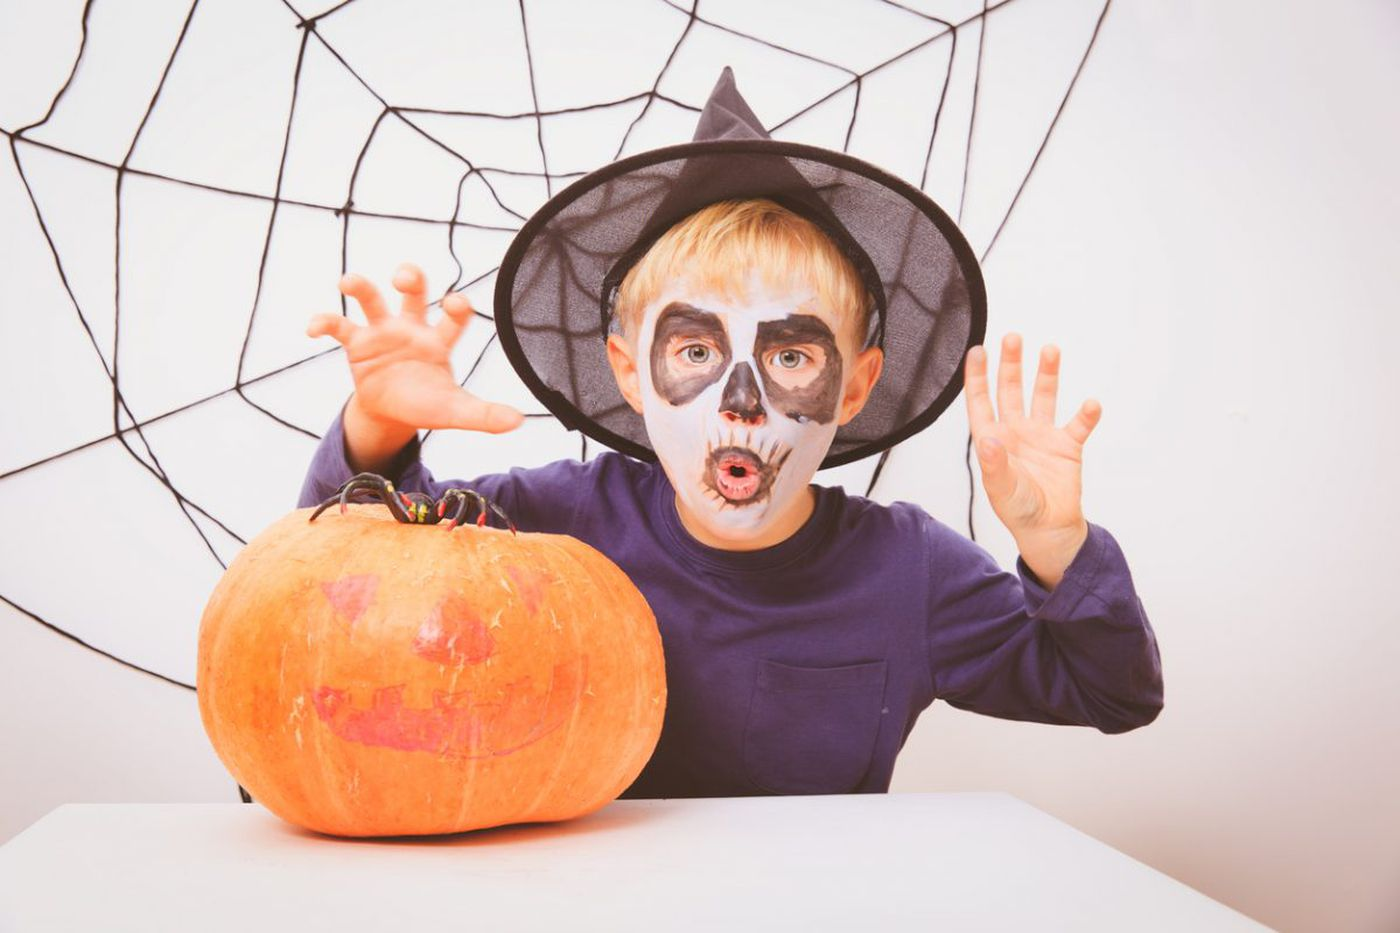 Just in time for Halloween: Helping kids deal with fear